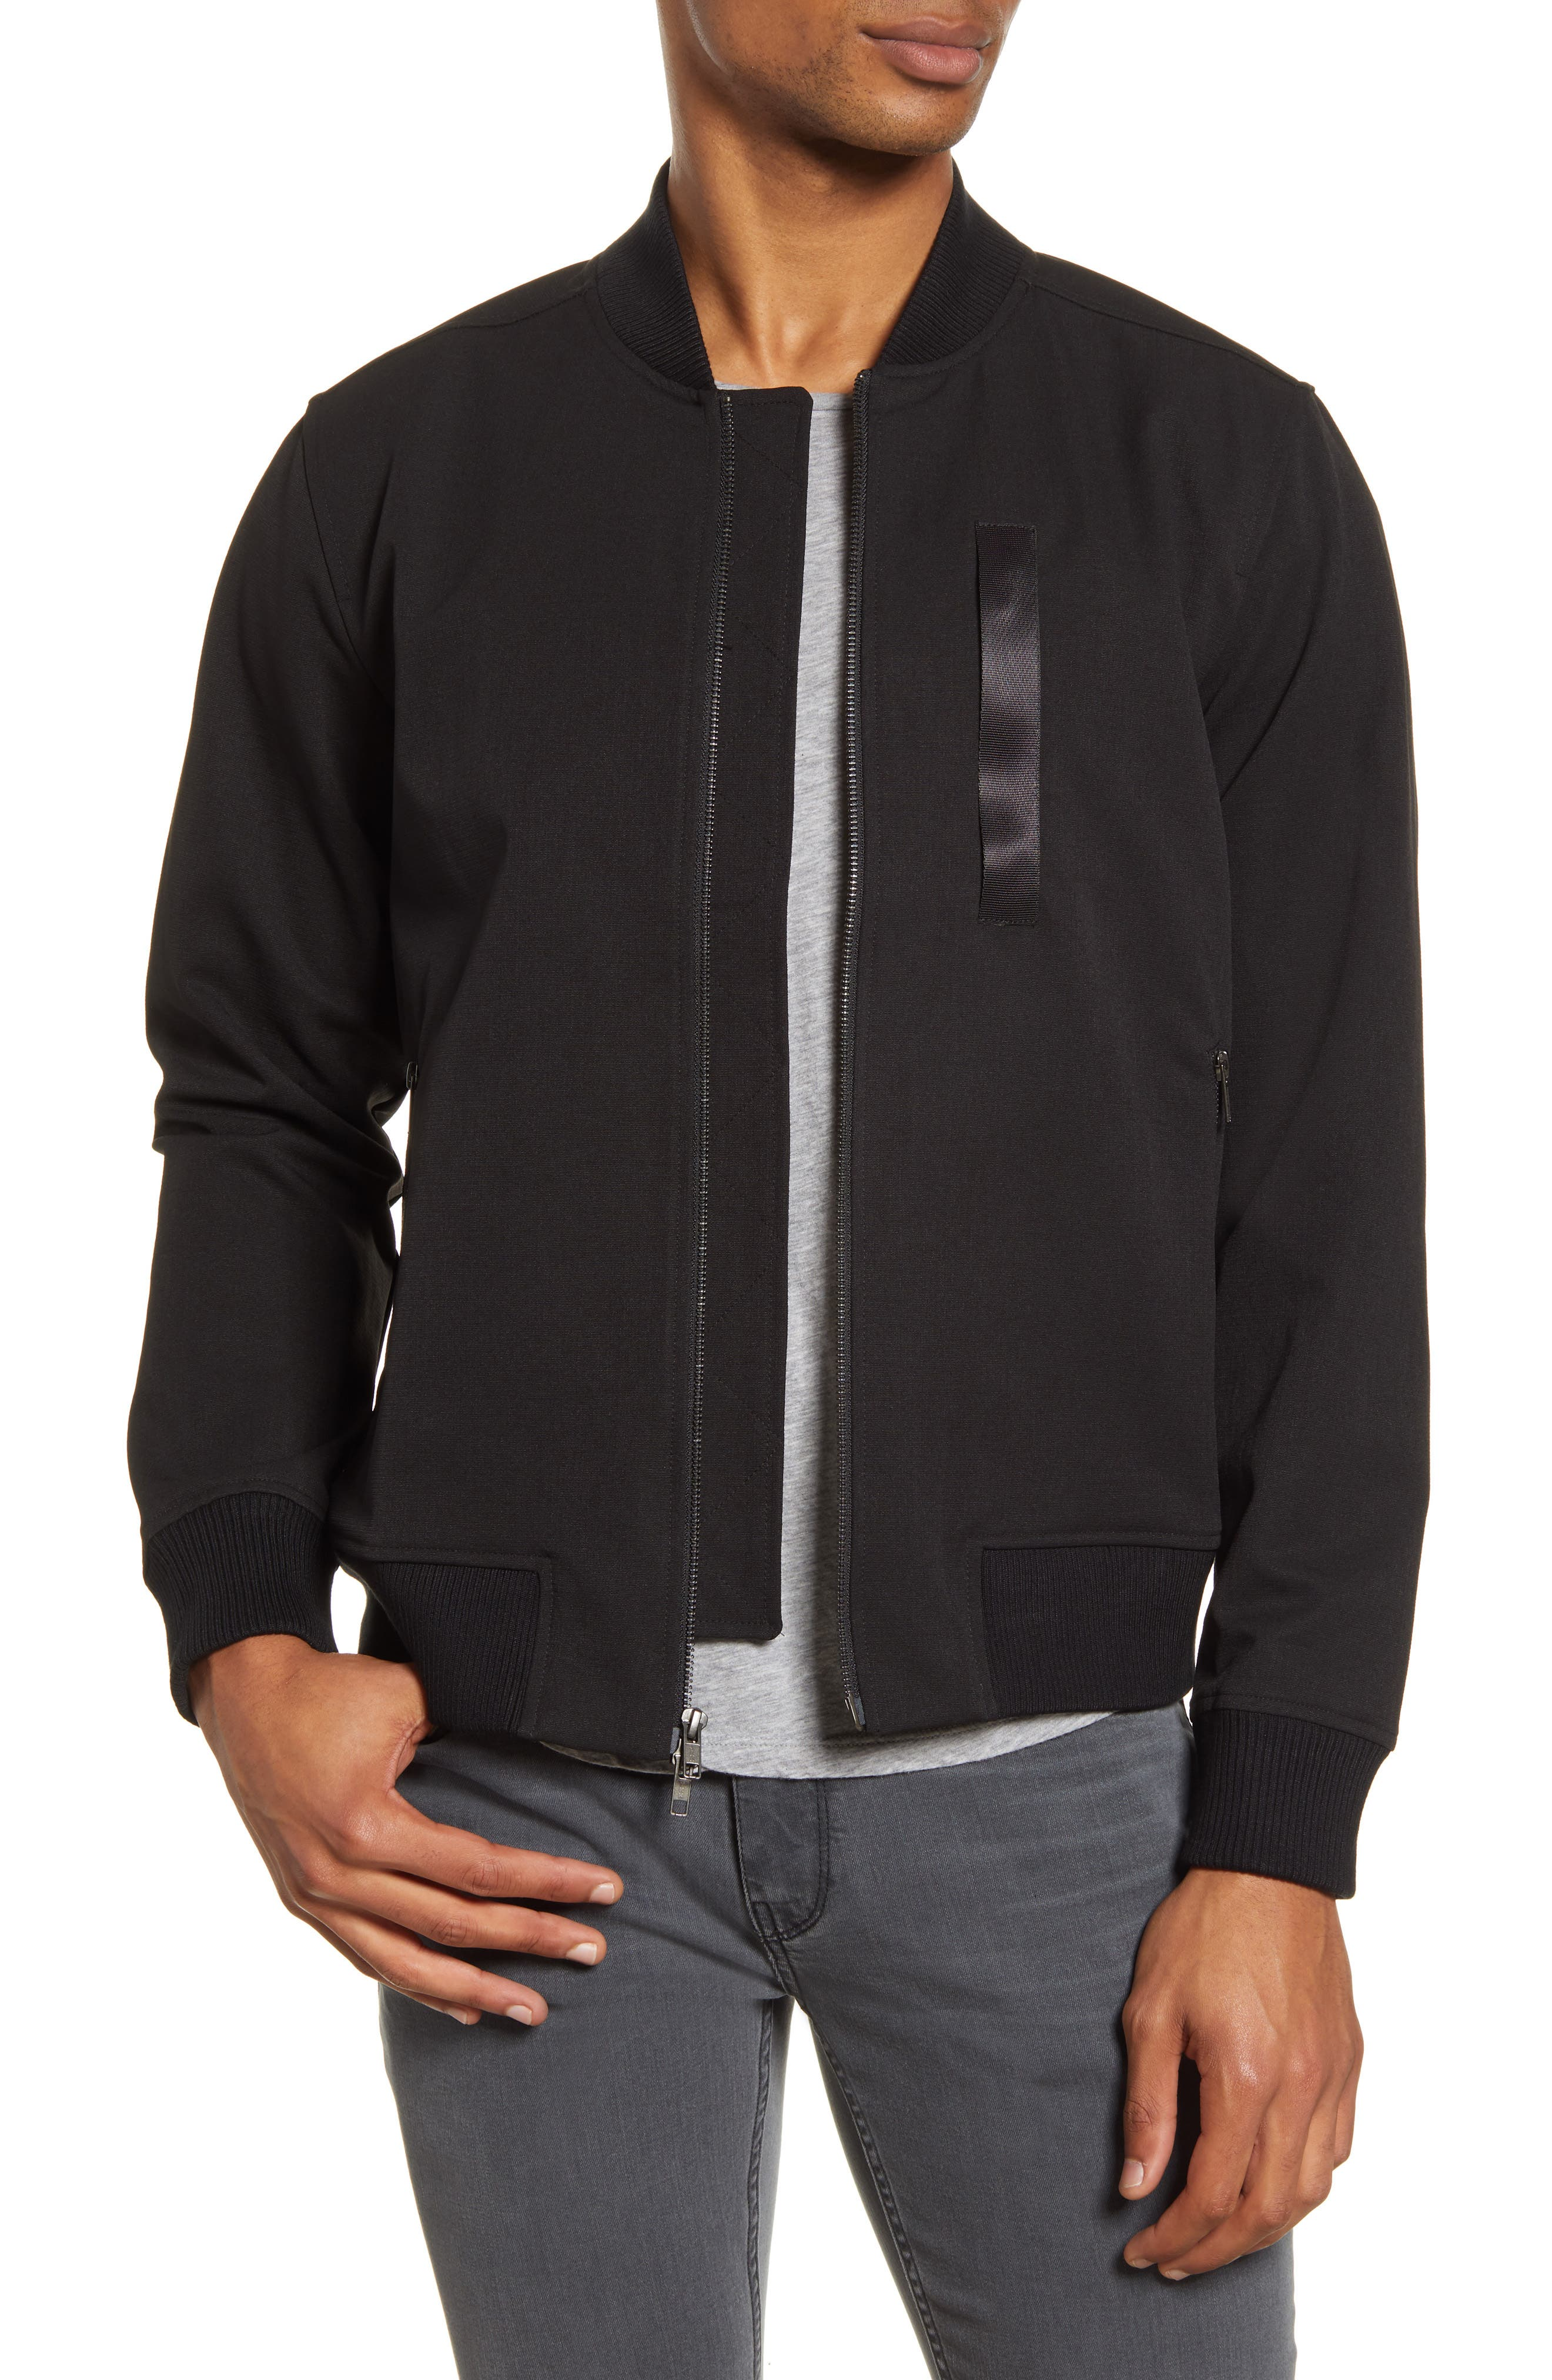 Image of ACYCLIC Slim Fit Covered Zip Bomber Jacket